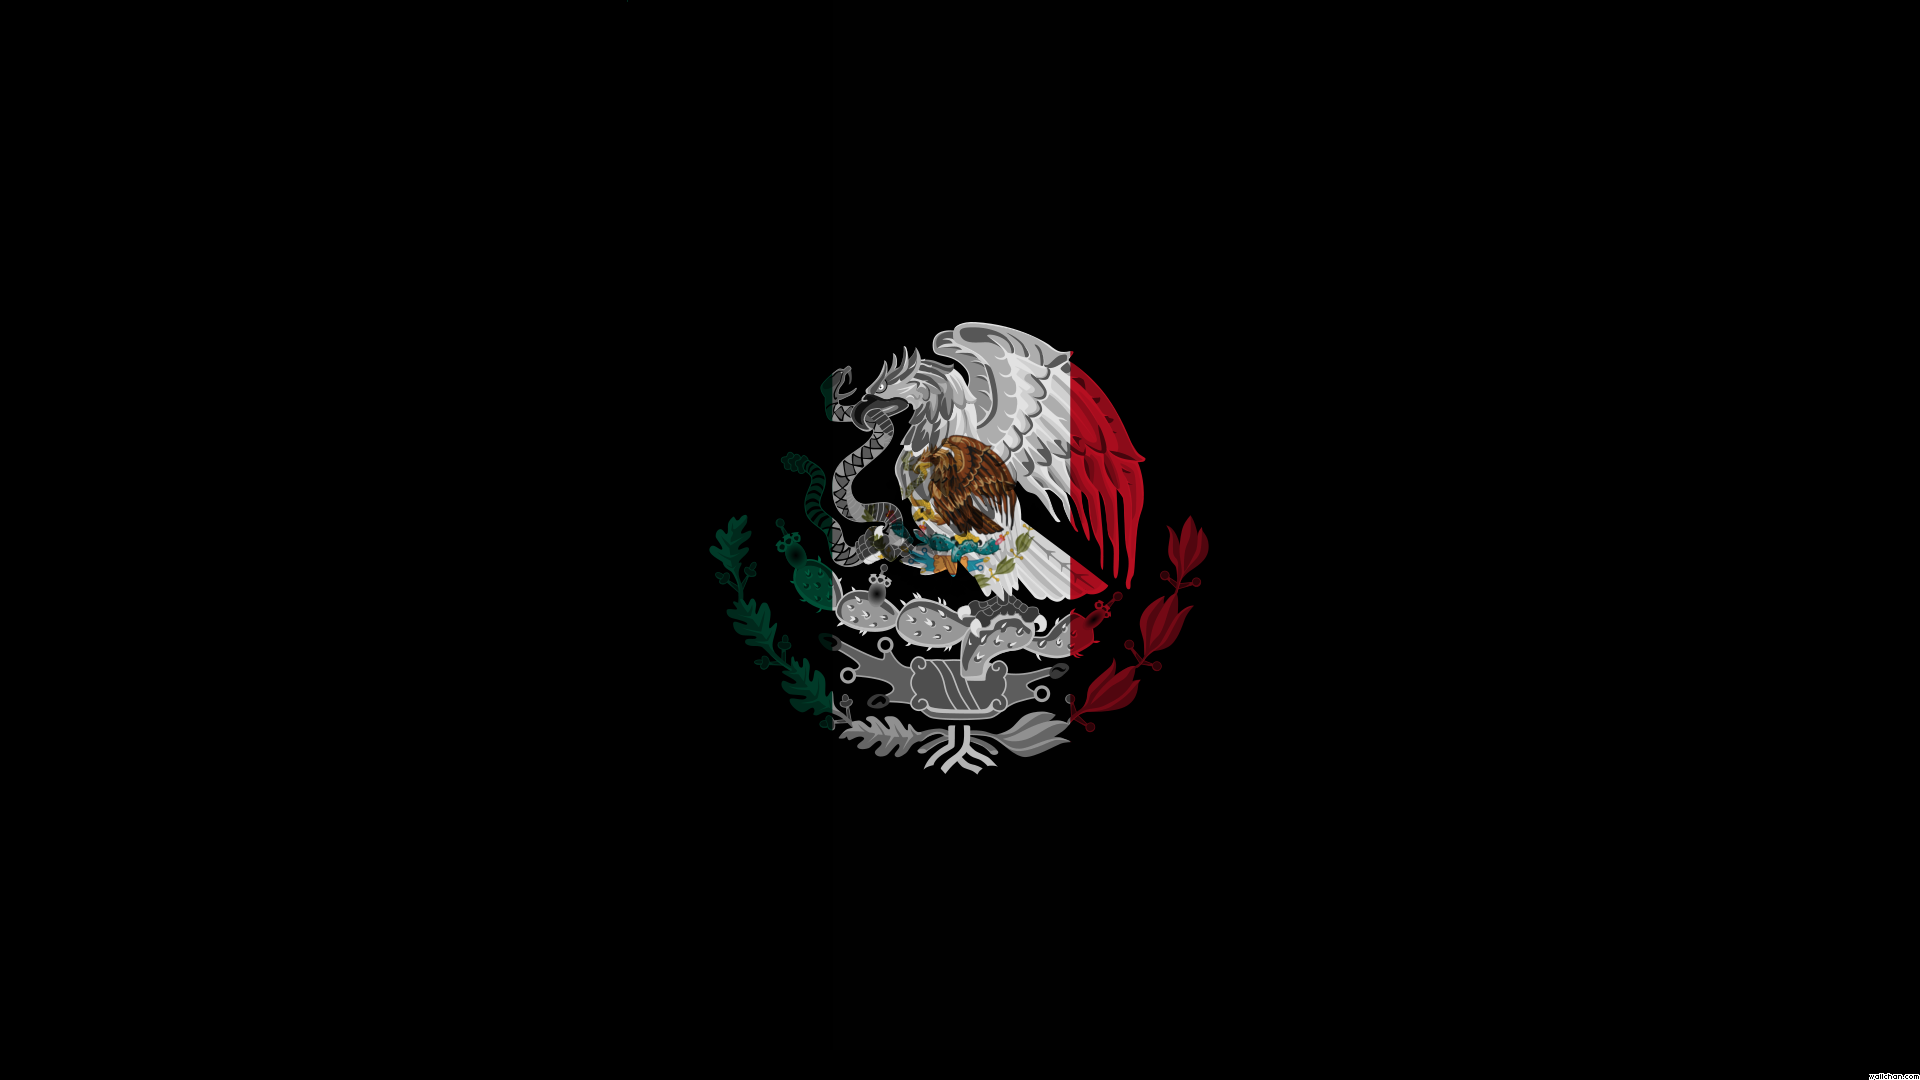 Cool Mexico Flag Wallpaper Places to Visit in 2019 Pinterest 1920x1080